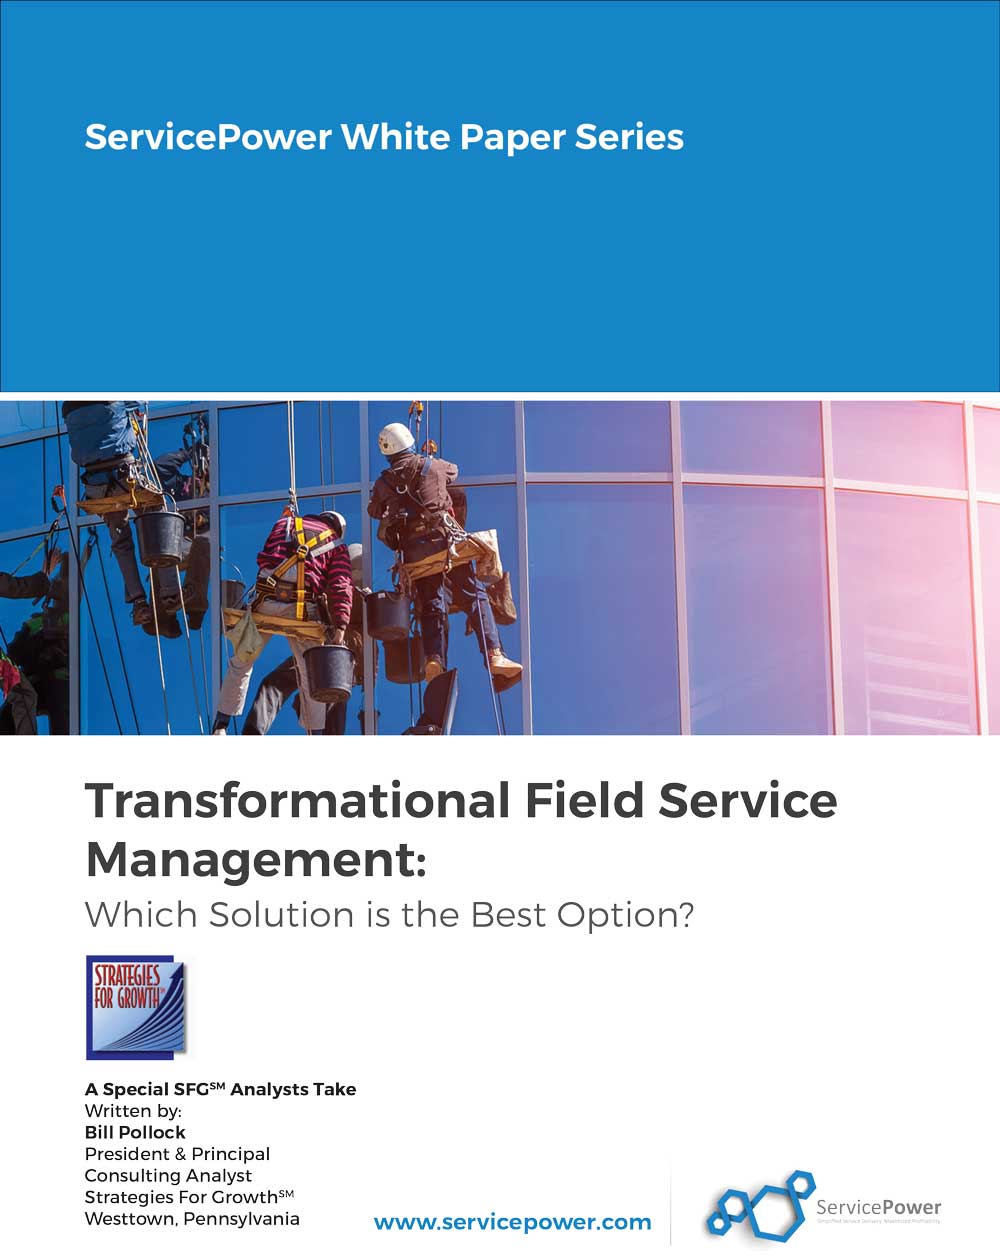 Download: Transformational Field Service Management: Which Solution is the Best Option?